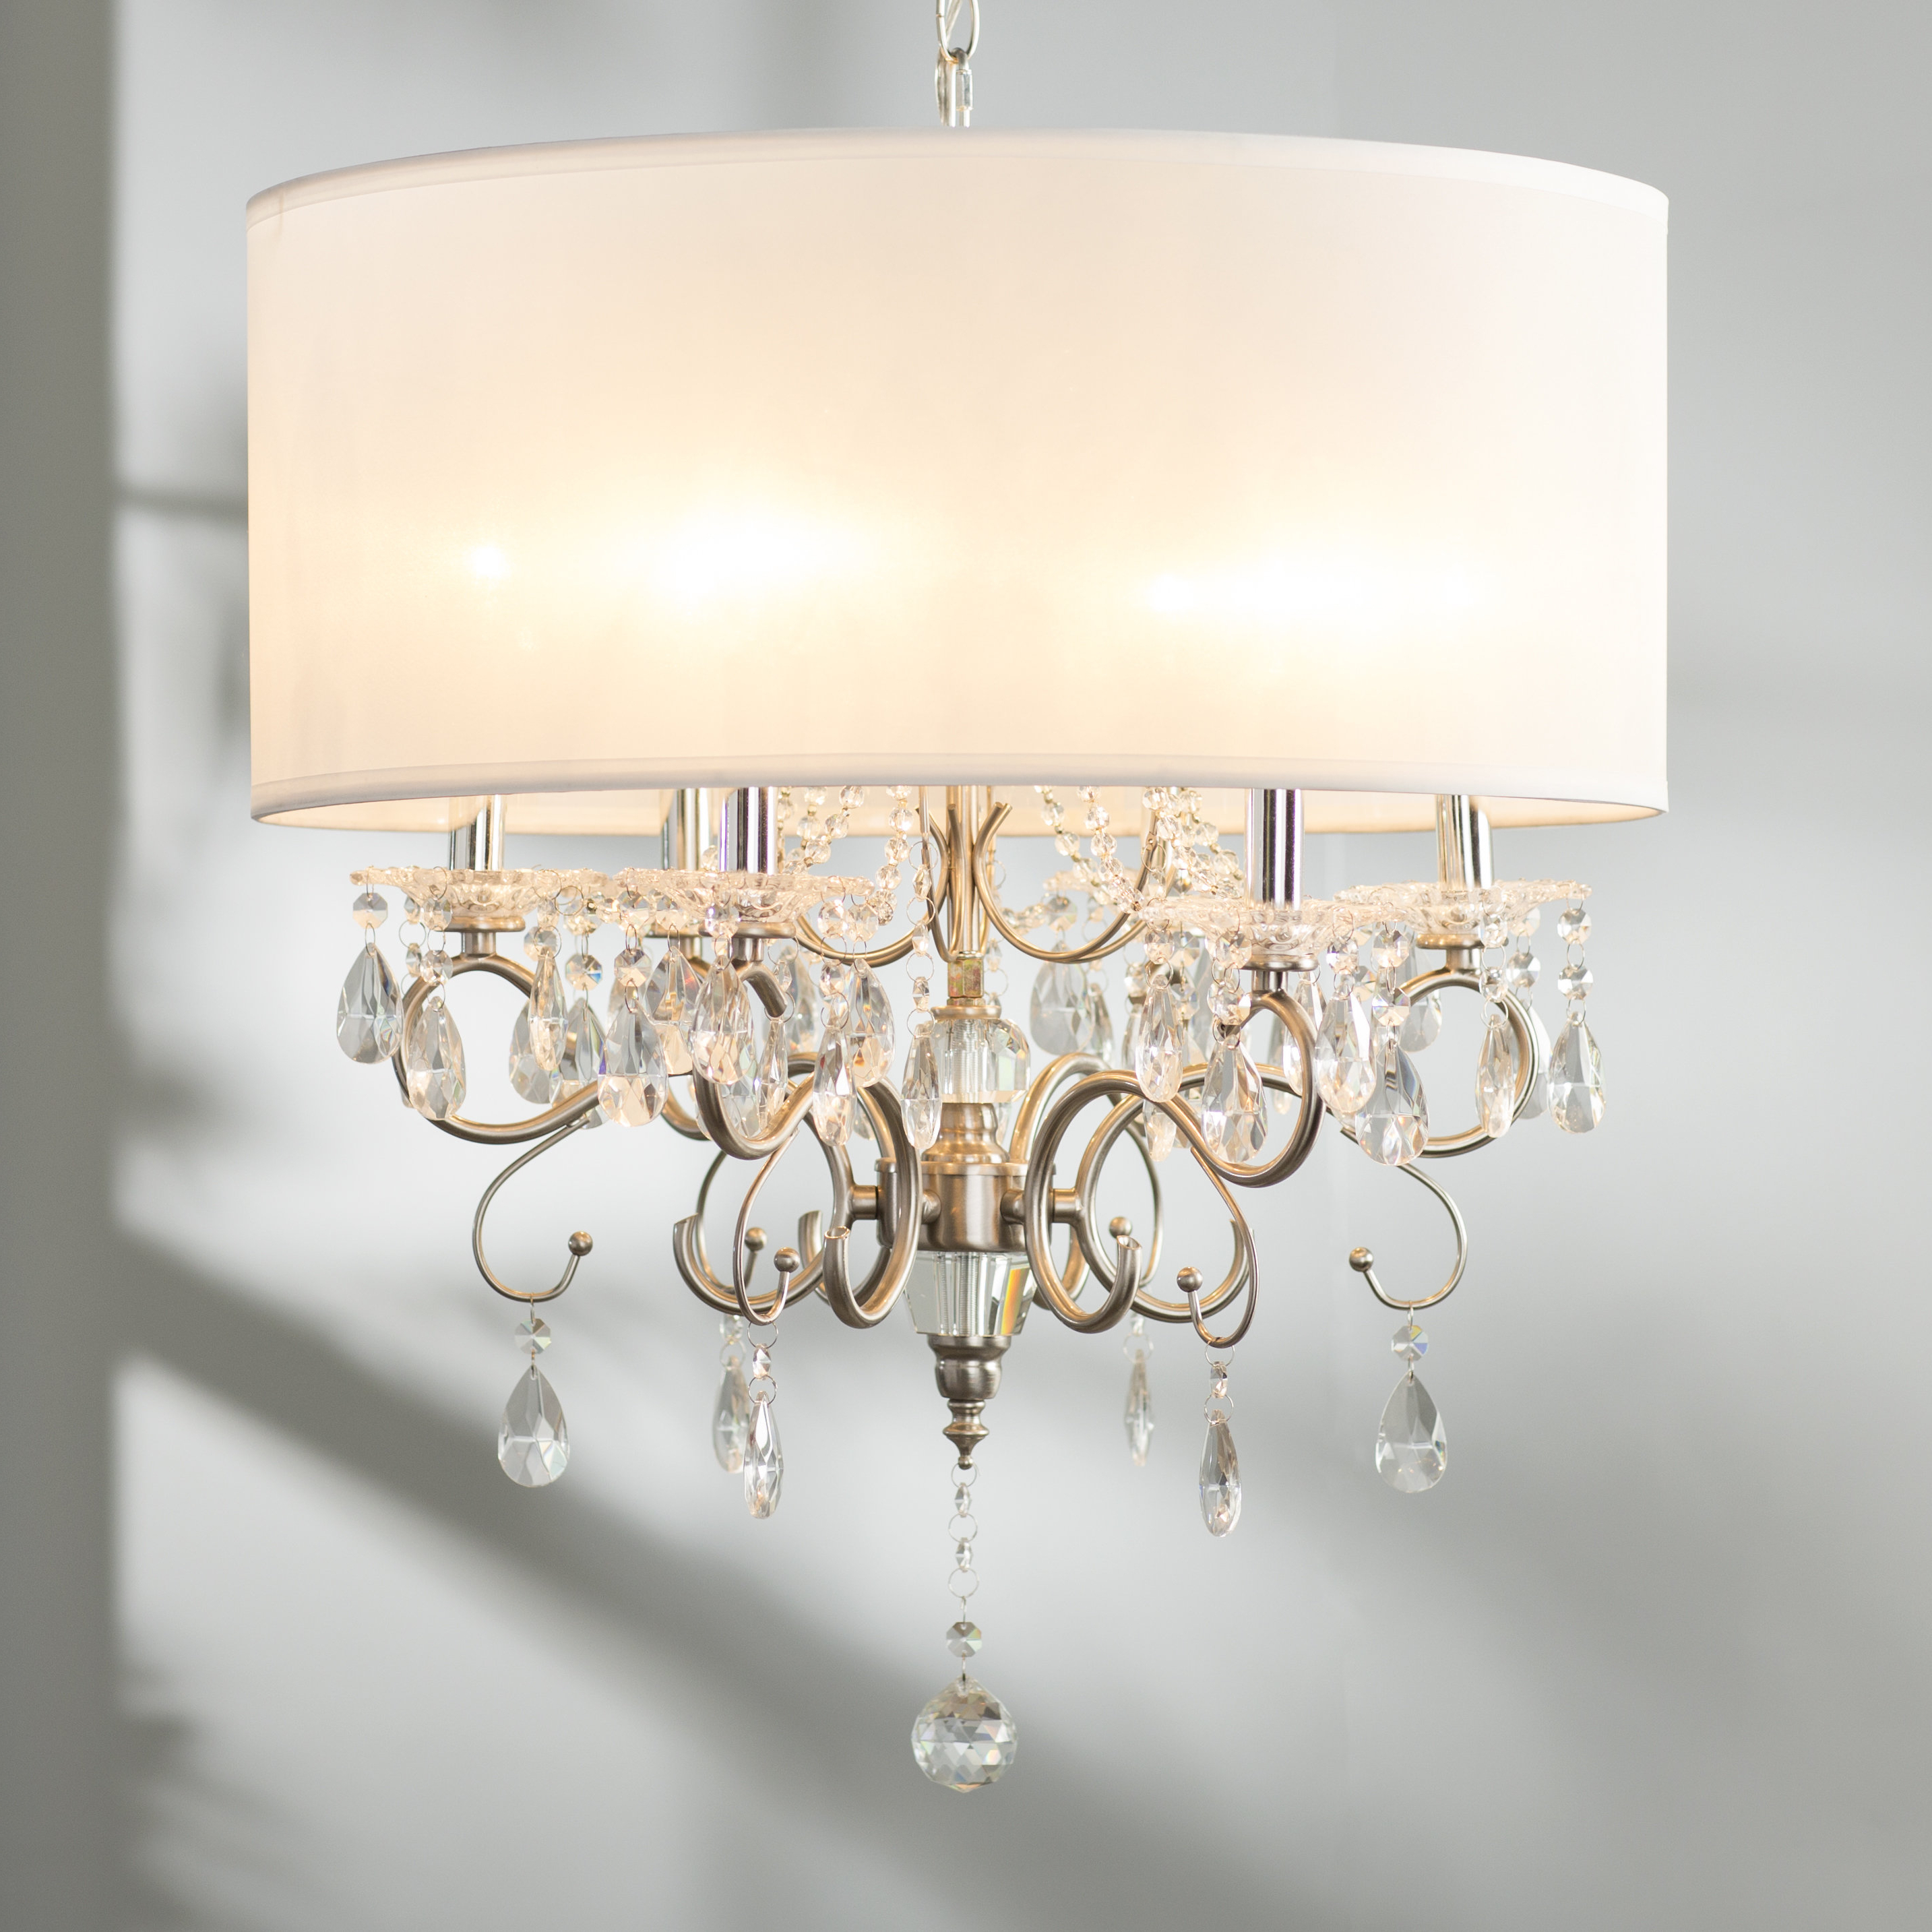 [%Drum Chandeliers Sale – Up To 65% Off Until September 30Th Intended For Current Gisselle 4 Light Drum Chandeliers|Gisselle 4 Light Drum Chandeliers Intended For Newest Drum Chandeliers Sale – Up To 65% Off Until September 30Th|Latest Gisselle 4 Light Drum Chandeliers Throughout Drum Chandeliers Sale – Up To 65% Off Until September 30Th|2020 Drum Chandeliers Sale – Up To 65% Off Until September 30Th Pertaining To Gisselle 4 Light Drum Chandeliers%] (View 23 of 25)